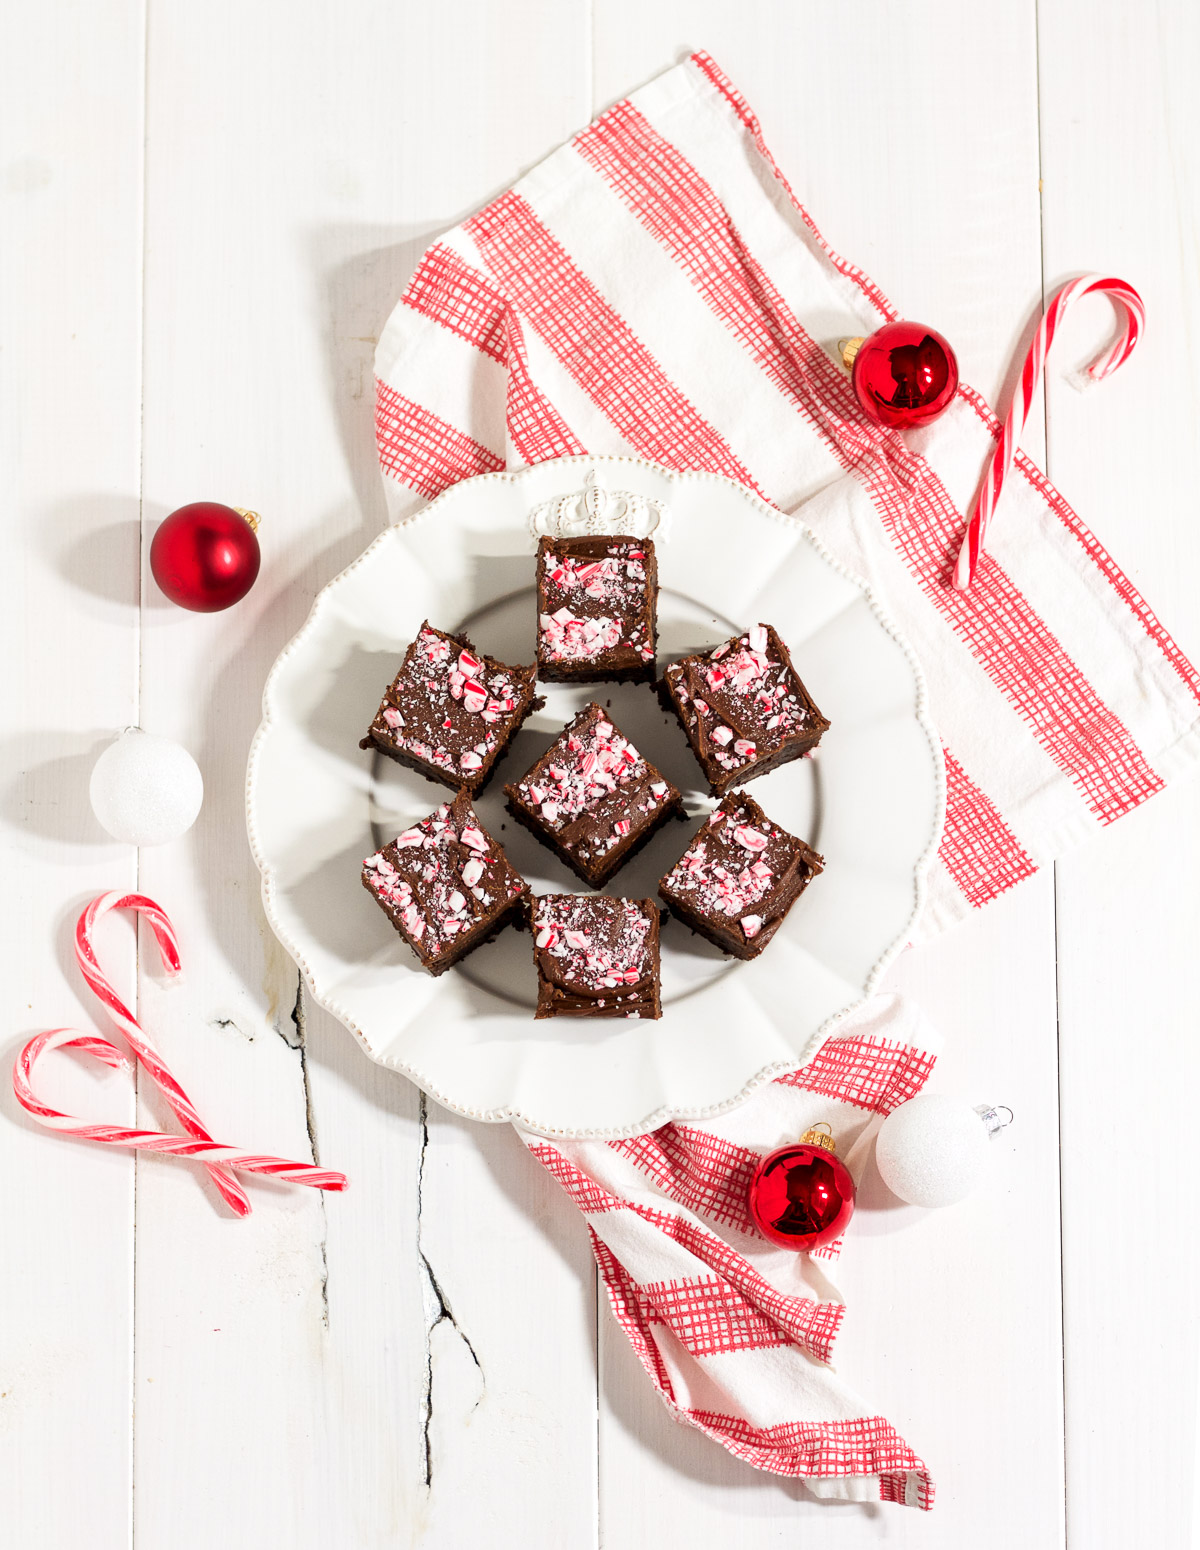 These rich and delicious peppermint fudge brownies are so simple to make!